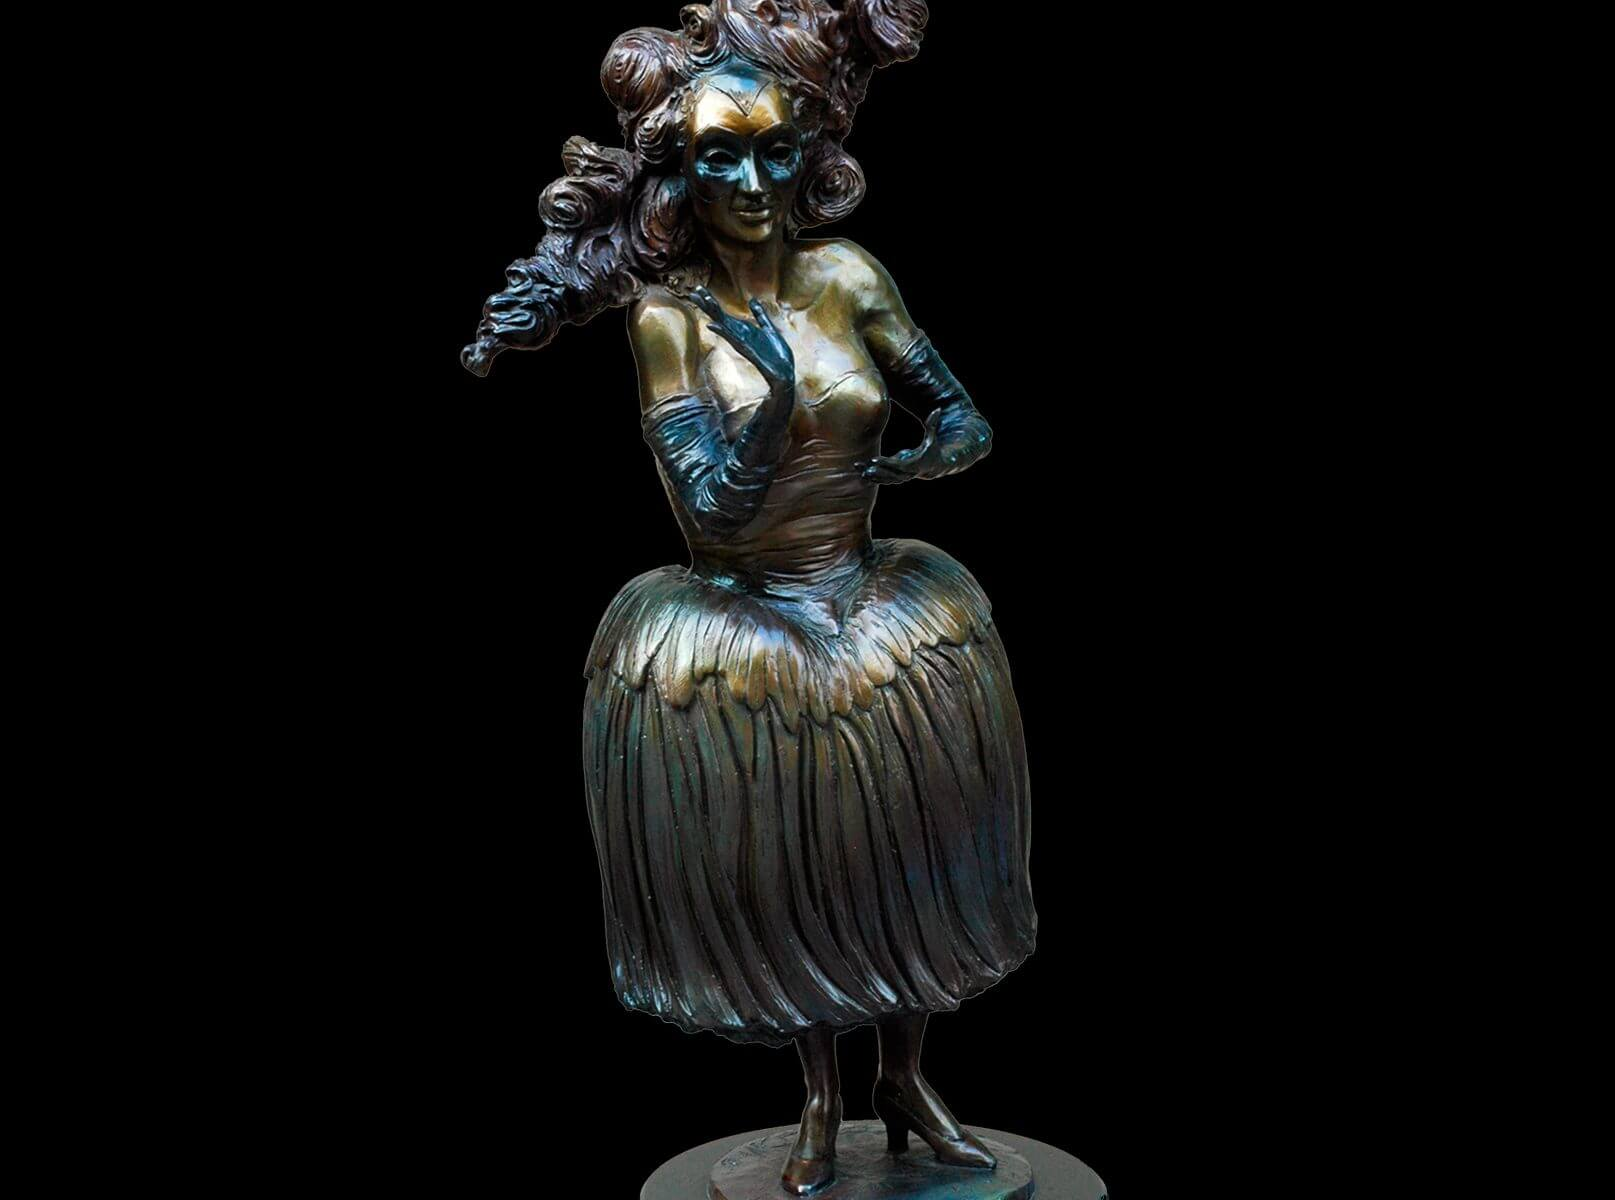 Key to my Heart a female bronze circus figurative sculpture by Andrew DeVries